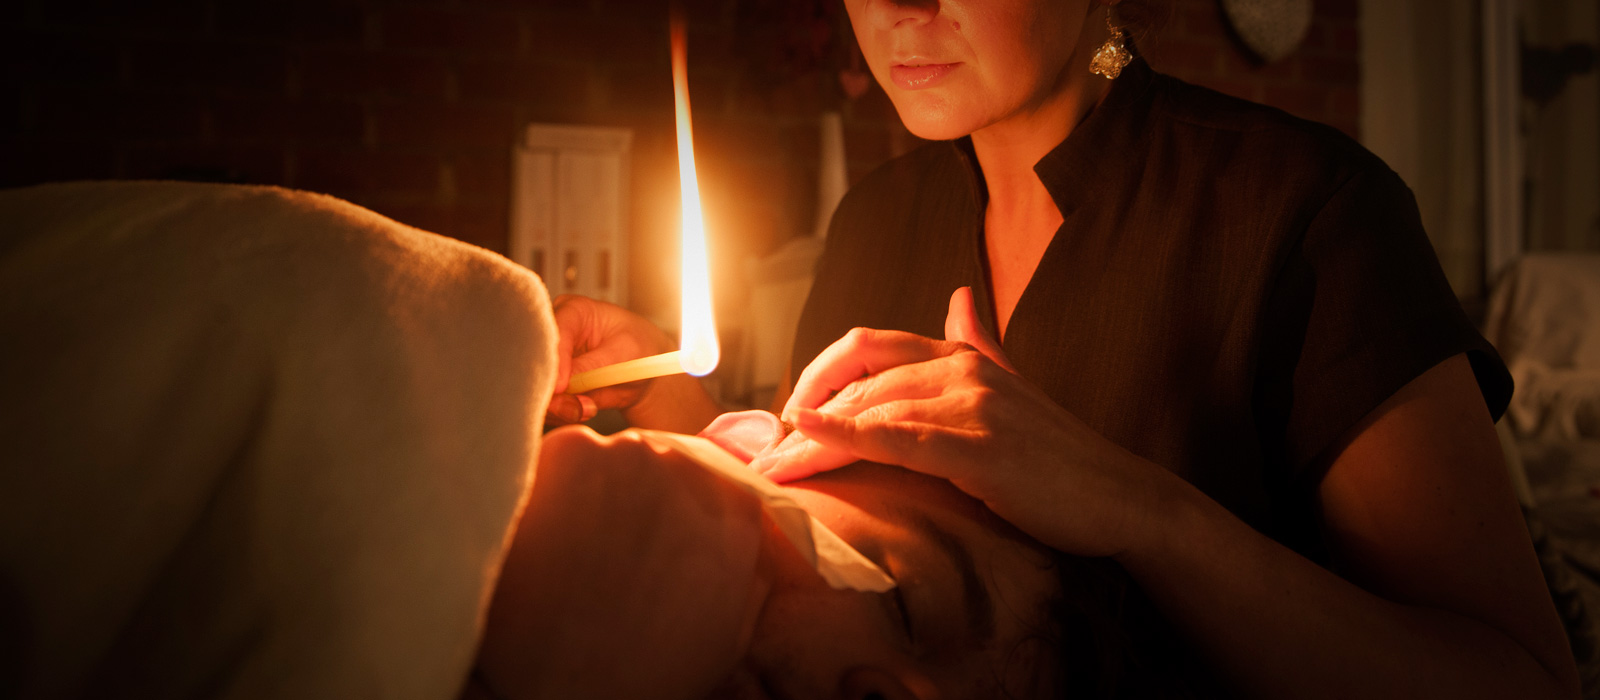 Hopi ear candle treatment in Loughborough, Leicestershire